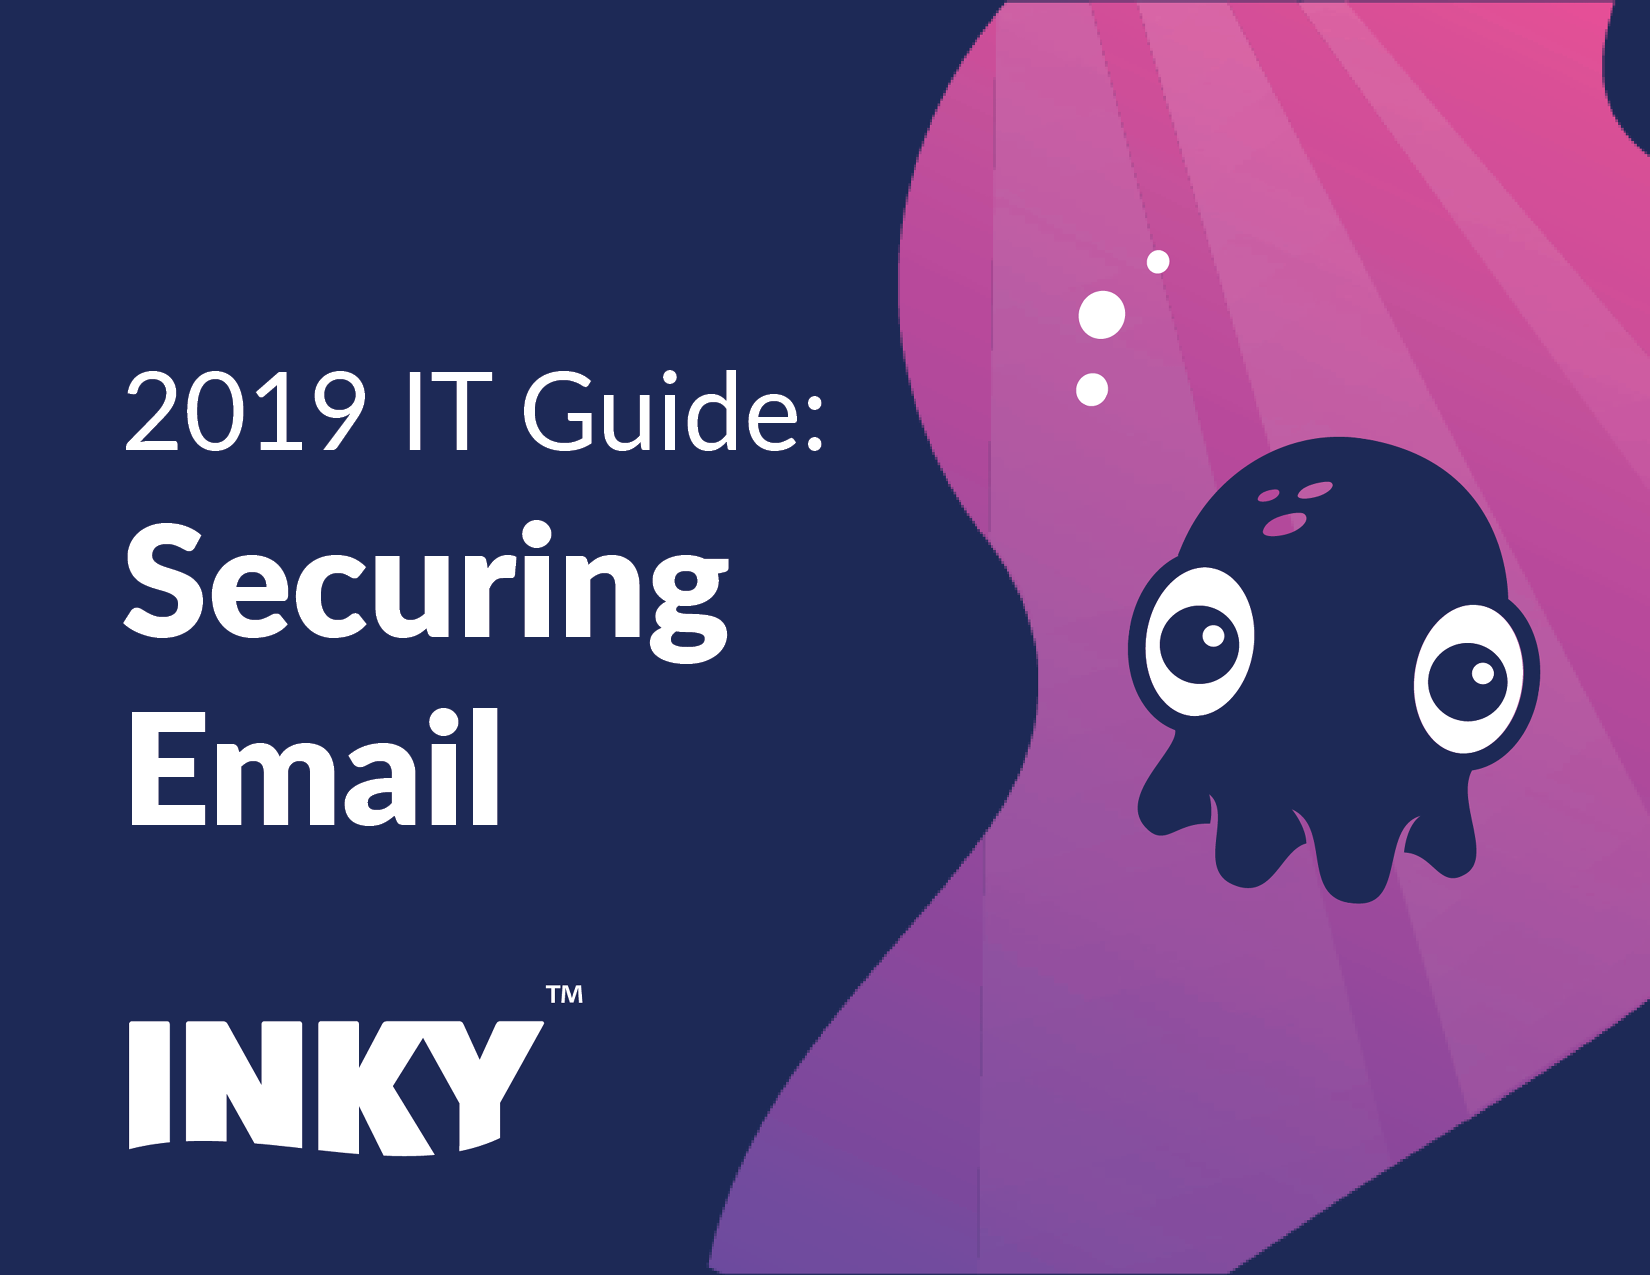 IT Guide for Securing Email